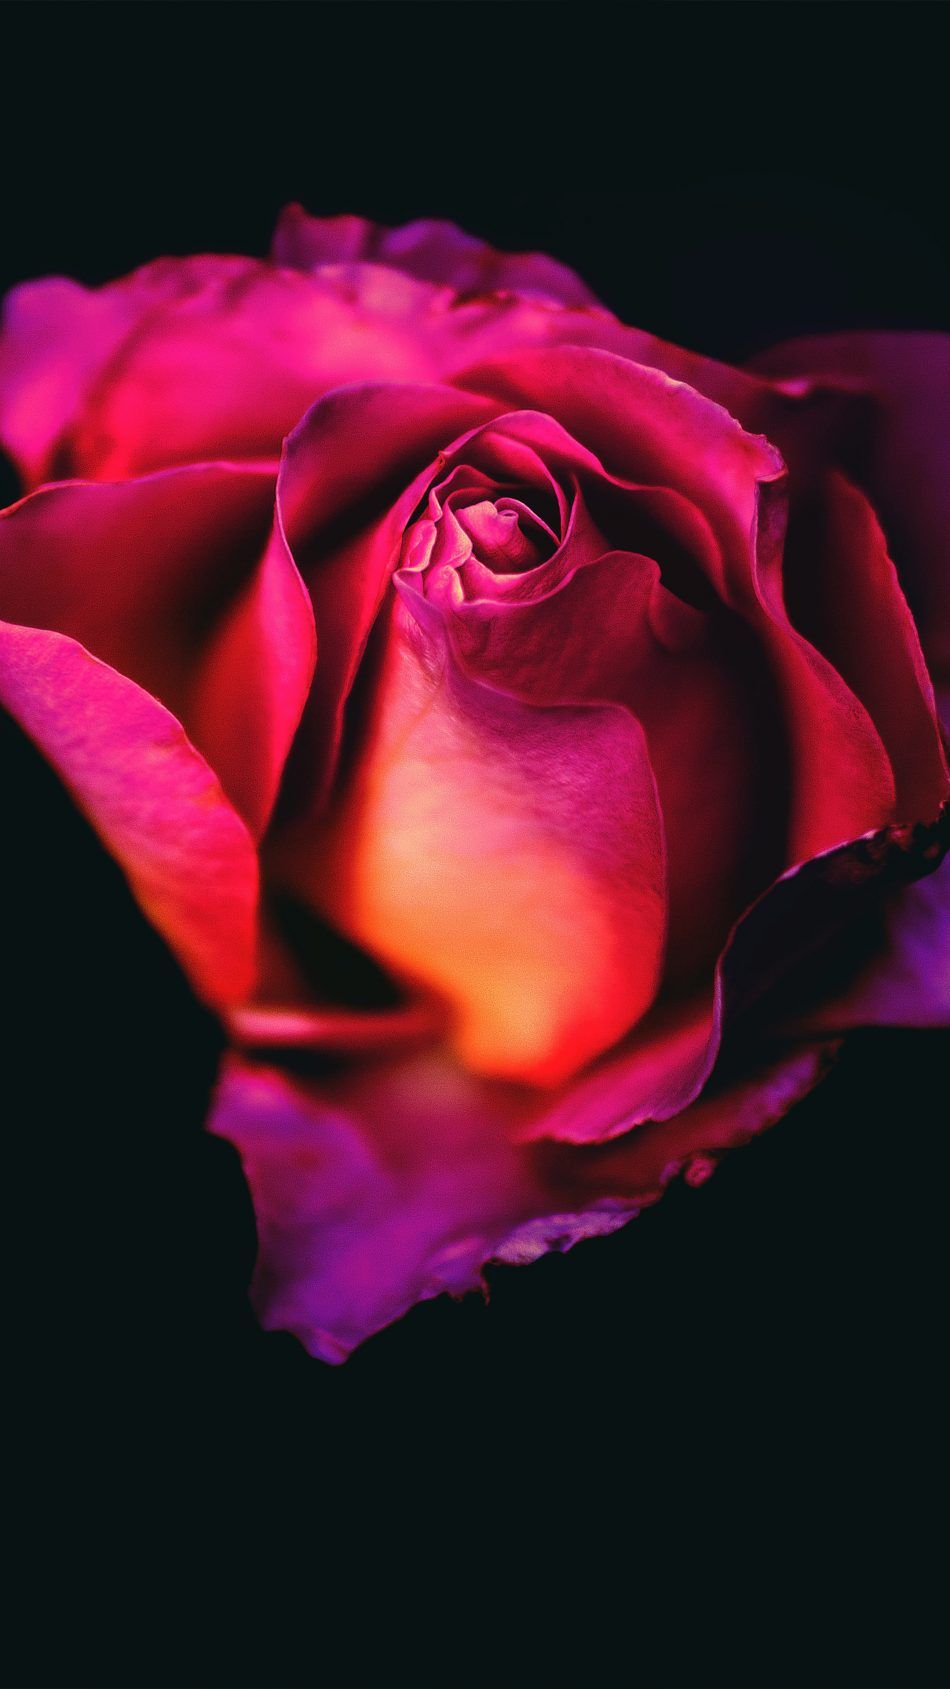 Rose Flower Dark Background 4k Ultra Hd Mobile Wallpaper Wallpaper Iphone Roses Rose Wallpaper Rose Flower Wallpaper